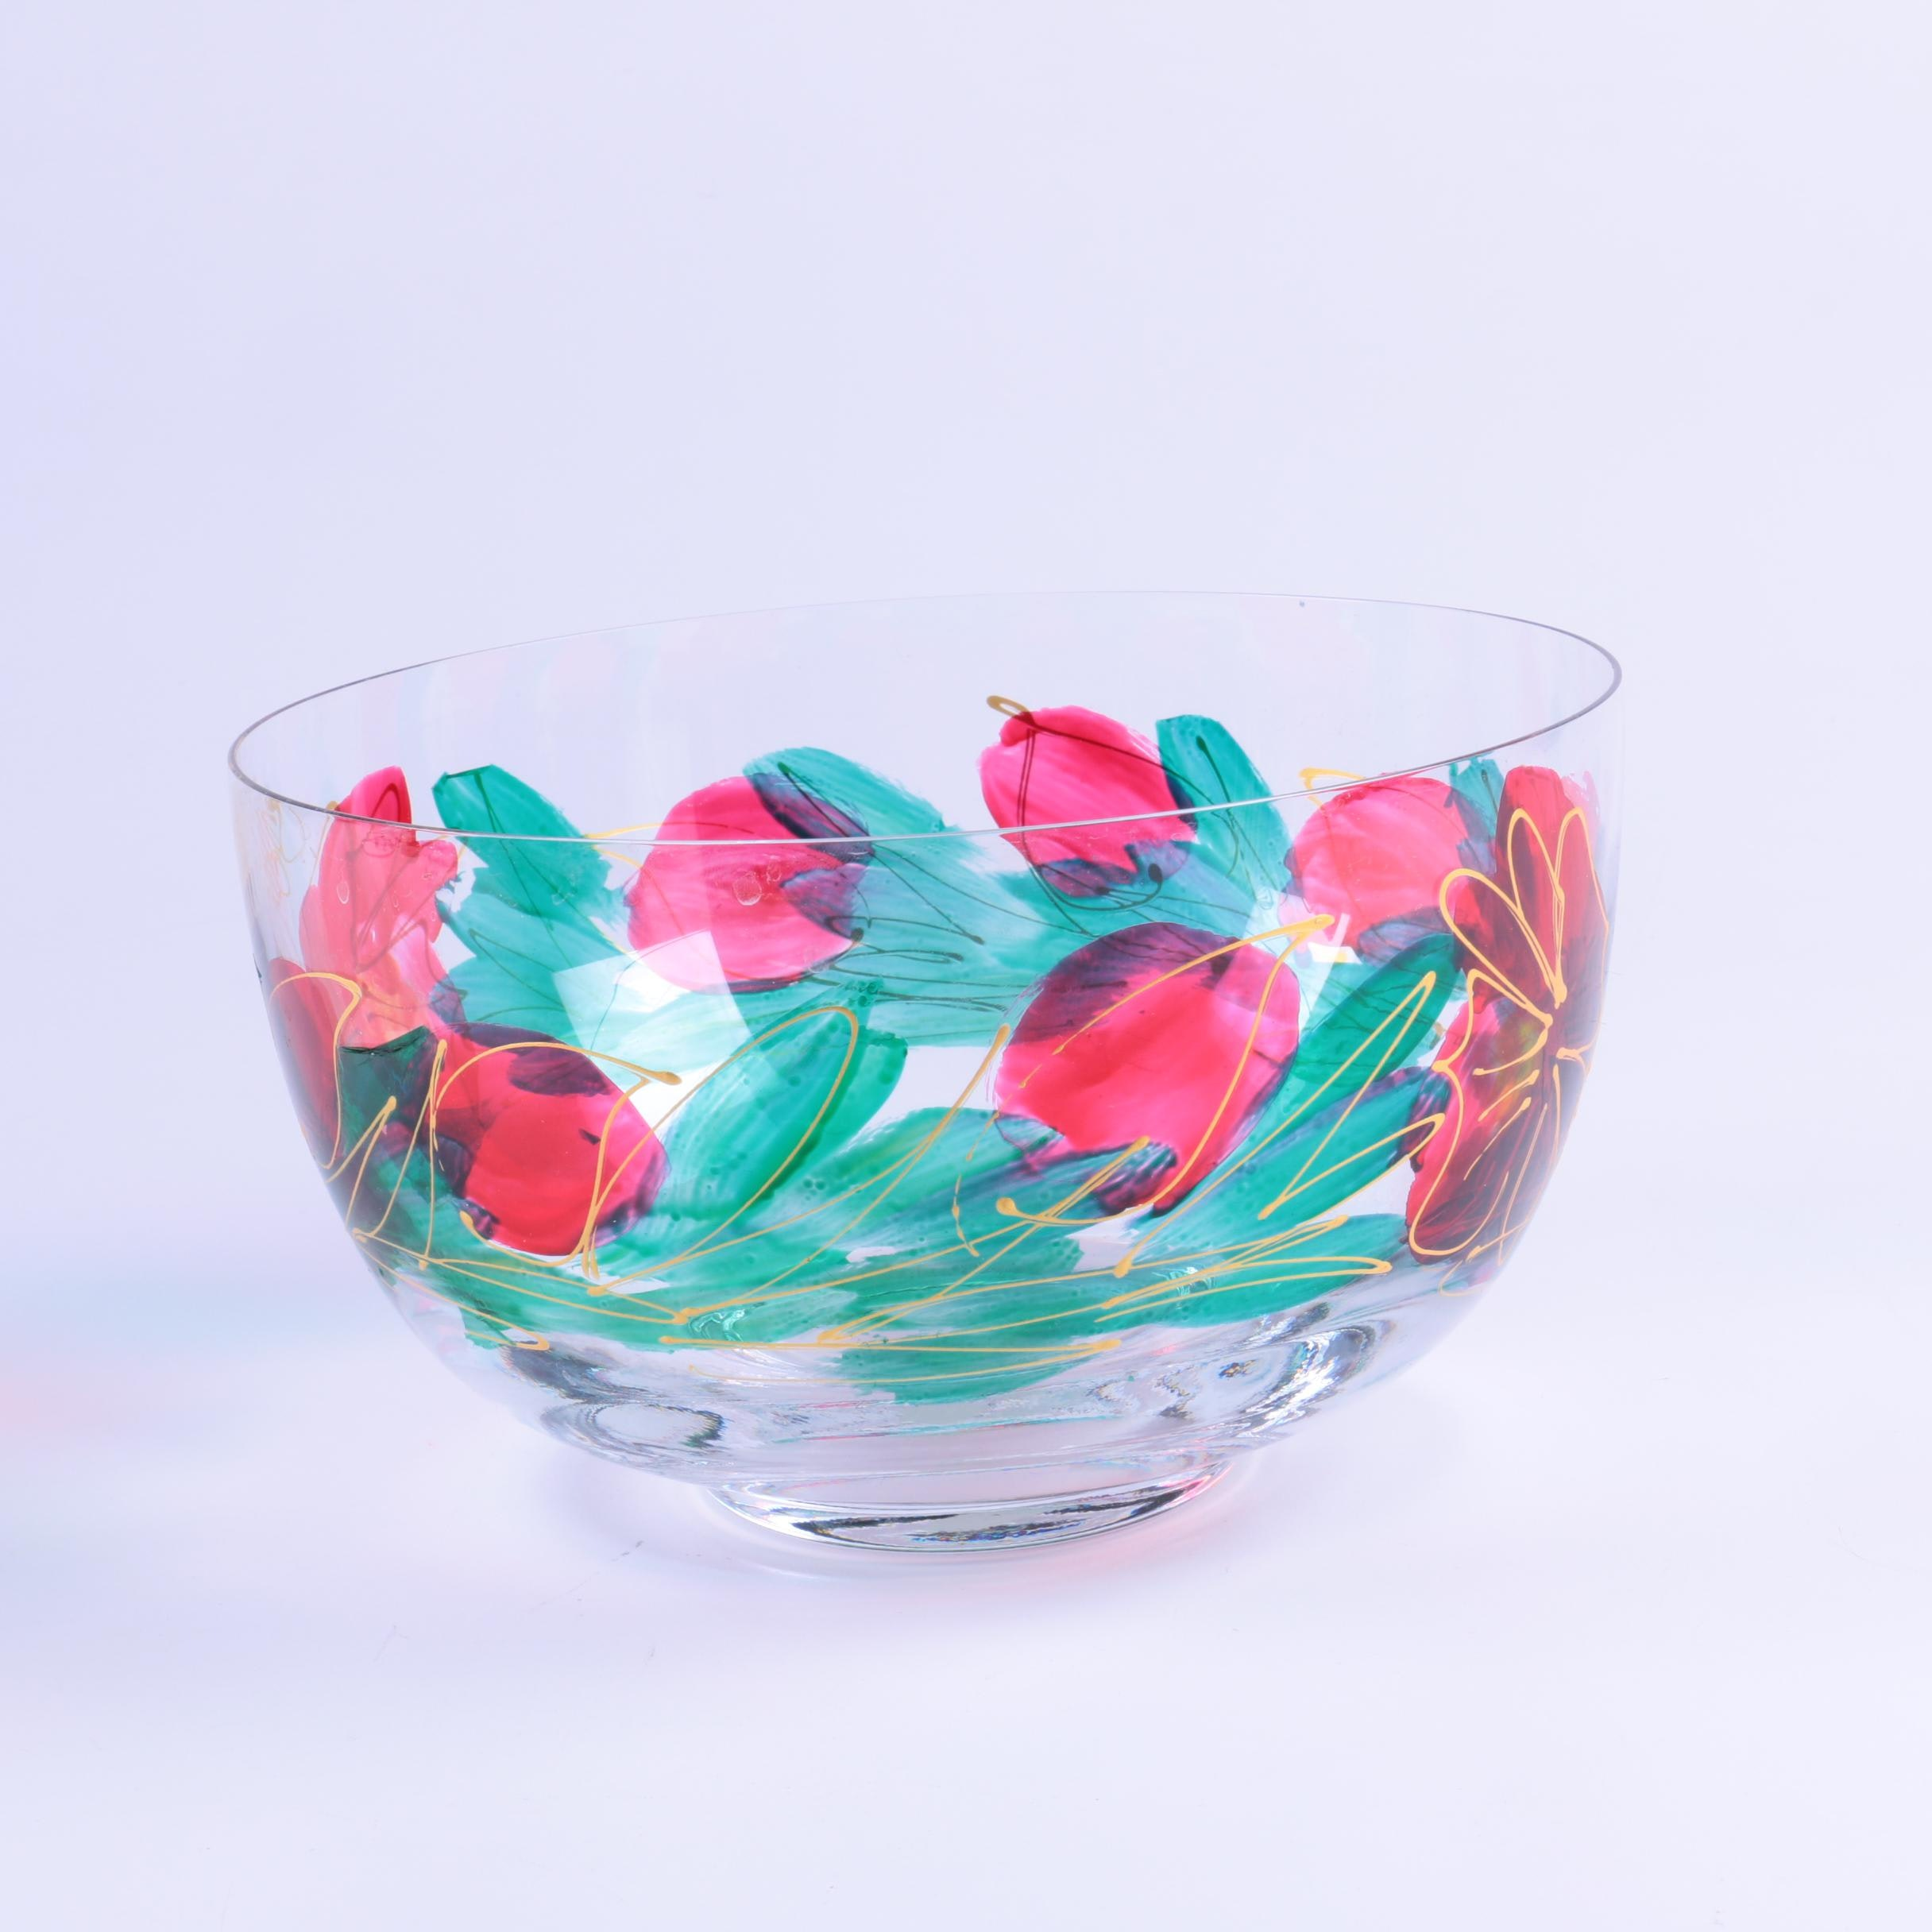 New Zealand Hand-Painted Glass Bowl